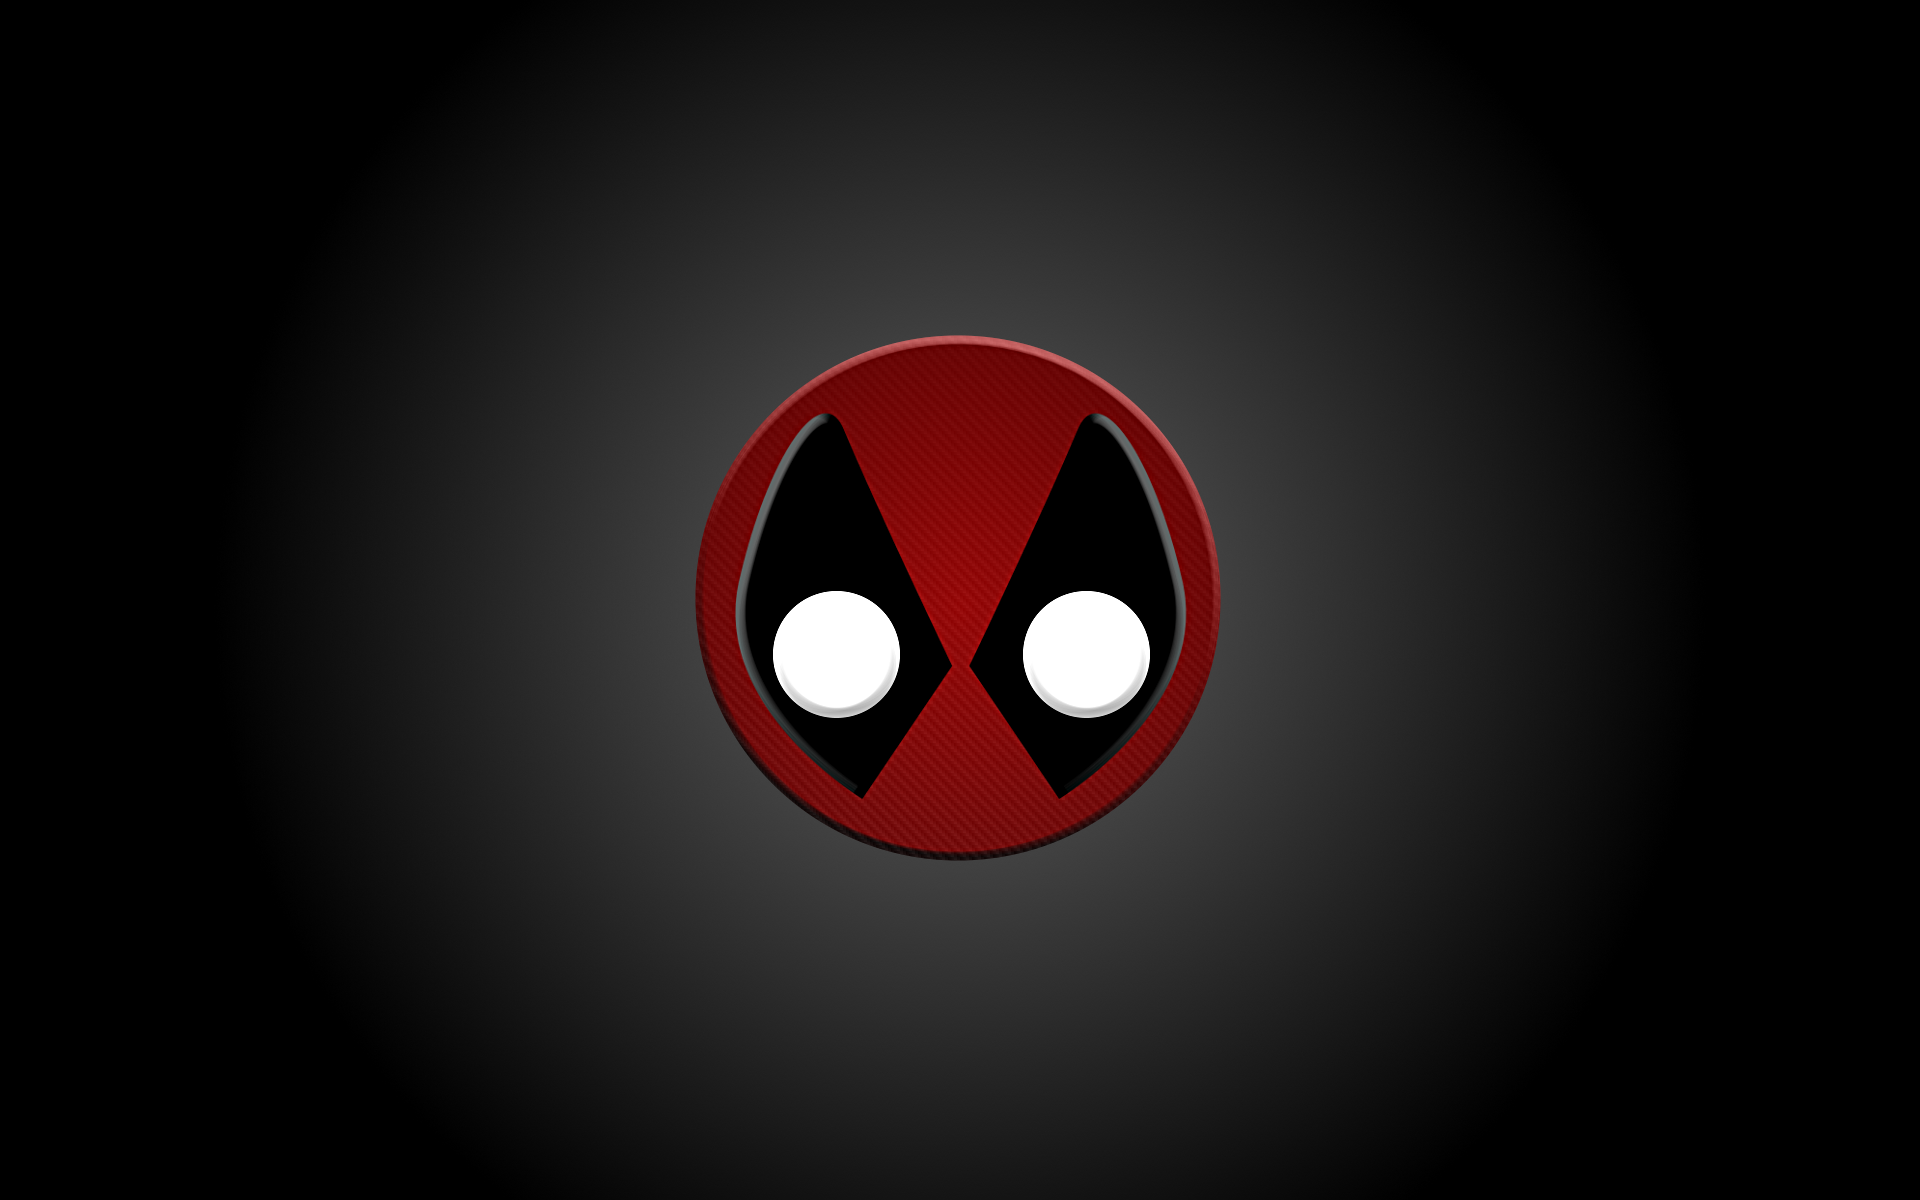 deadpool logo wallpaper hd | pixelstalk